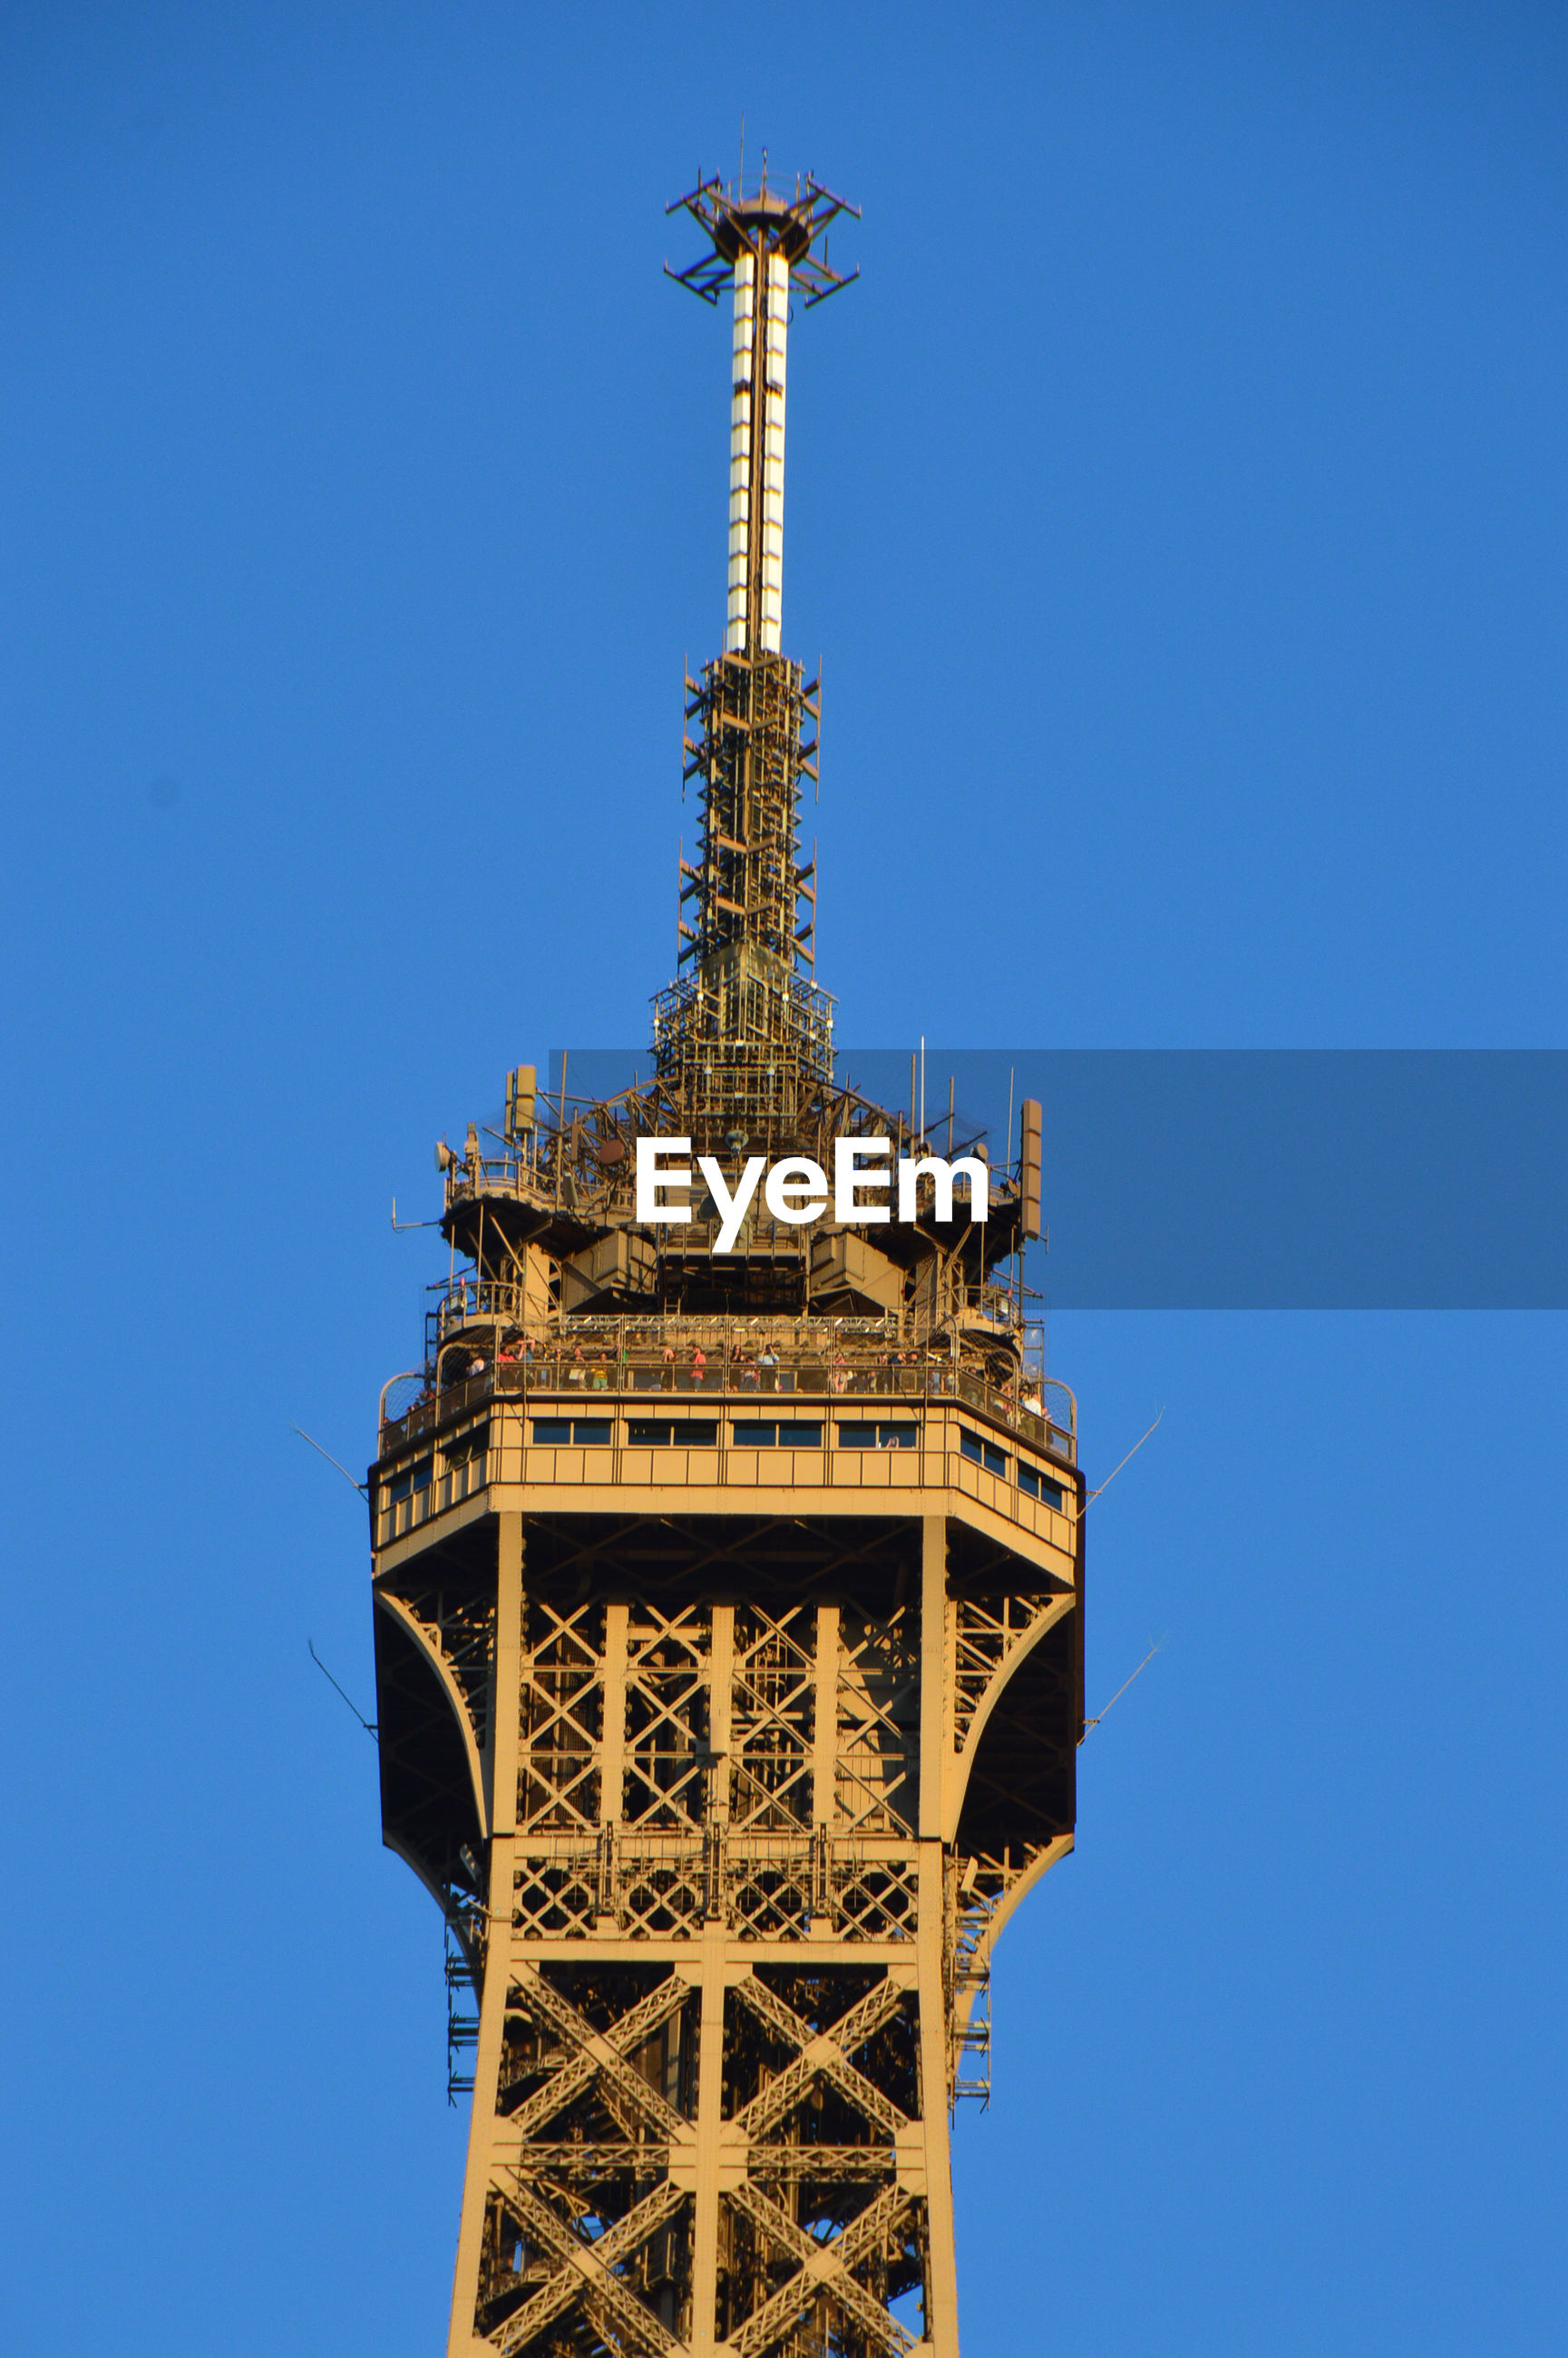 Low angle view of eiffel tower against blue sky.